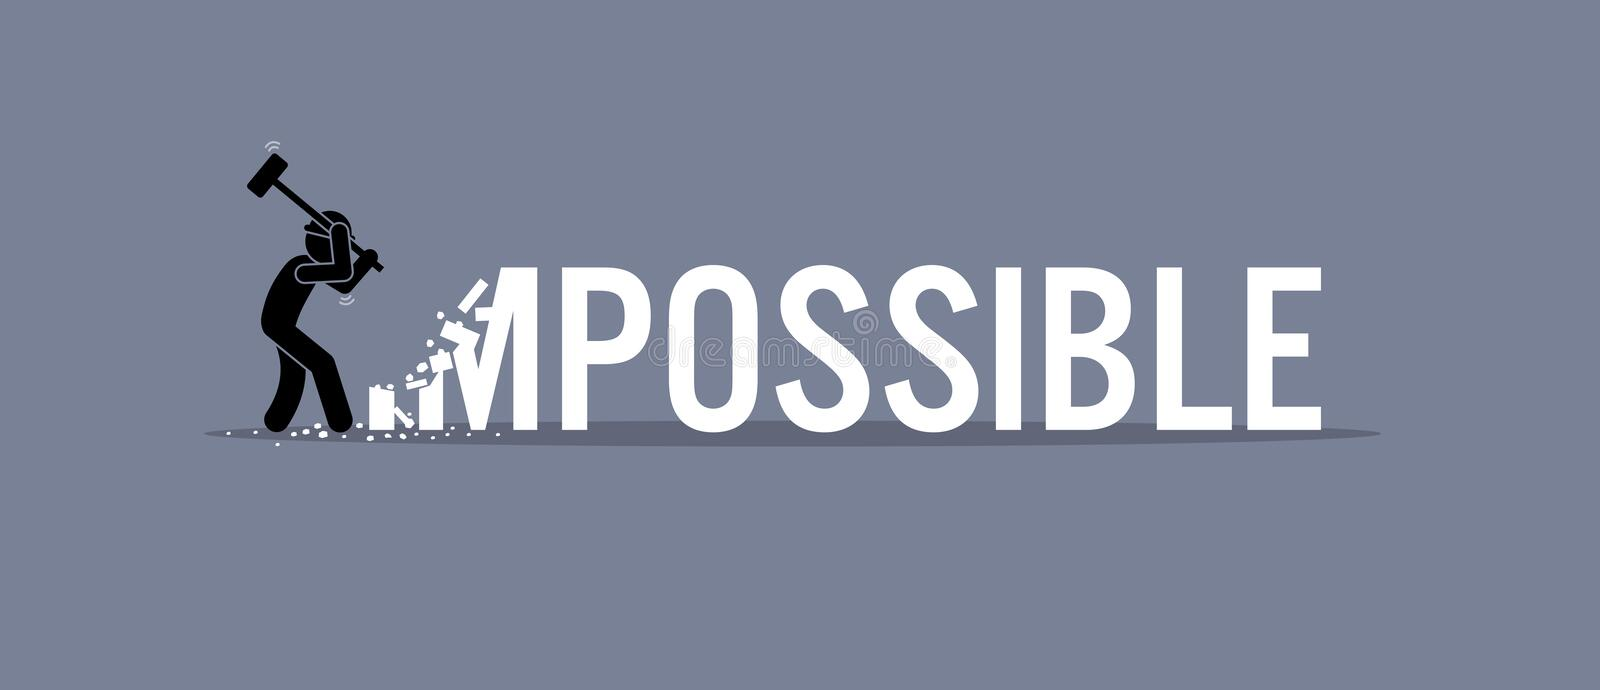 Man destroying the word impossible to possible. stock illustration